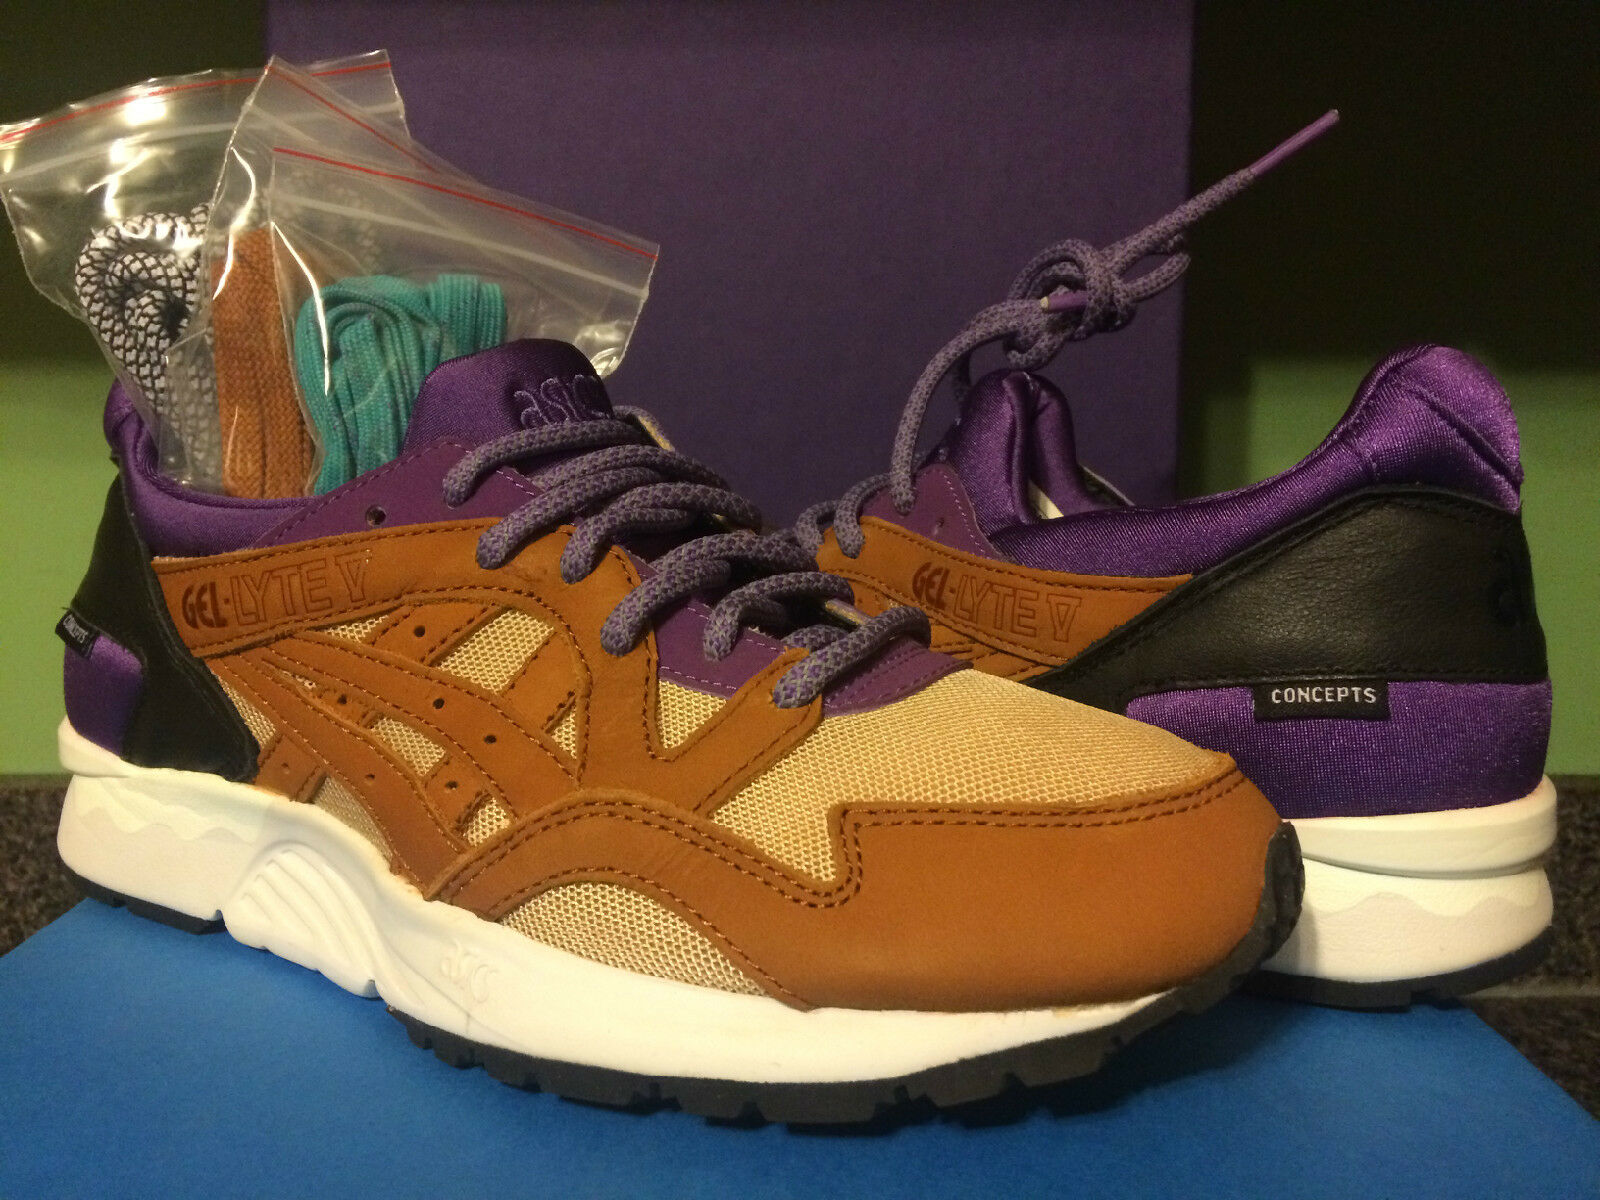 ASICS X CONCEPTS GEL LYTE V 5-11 H54BK PURPLE CHESTNUT MIX AND MATCH. CNCPTS BOX